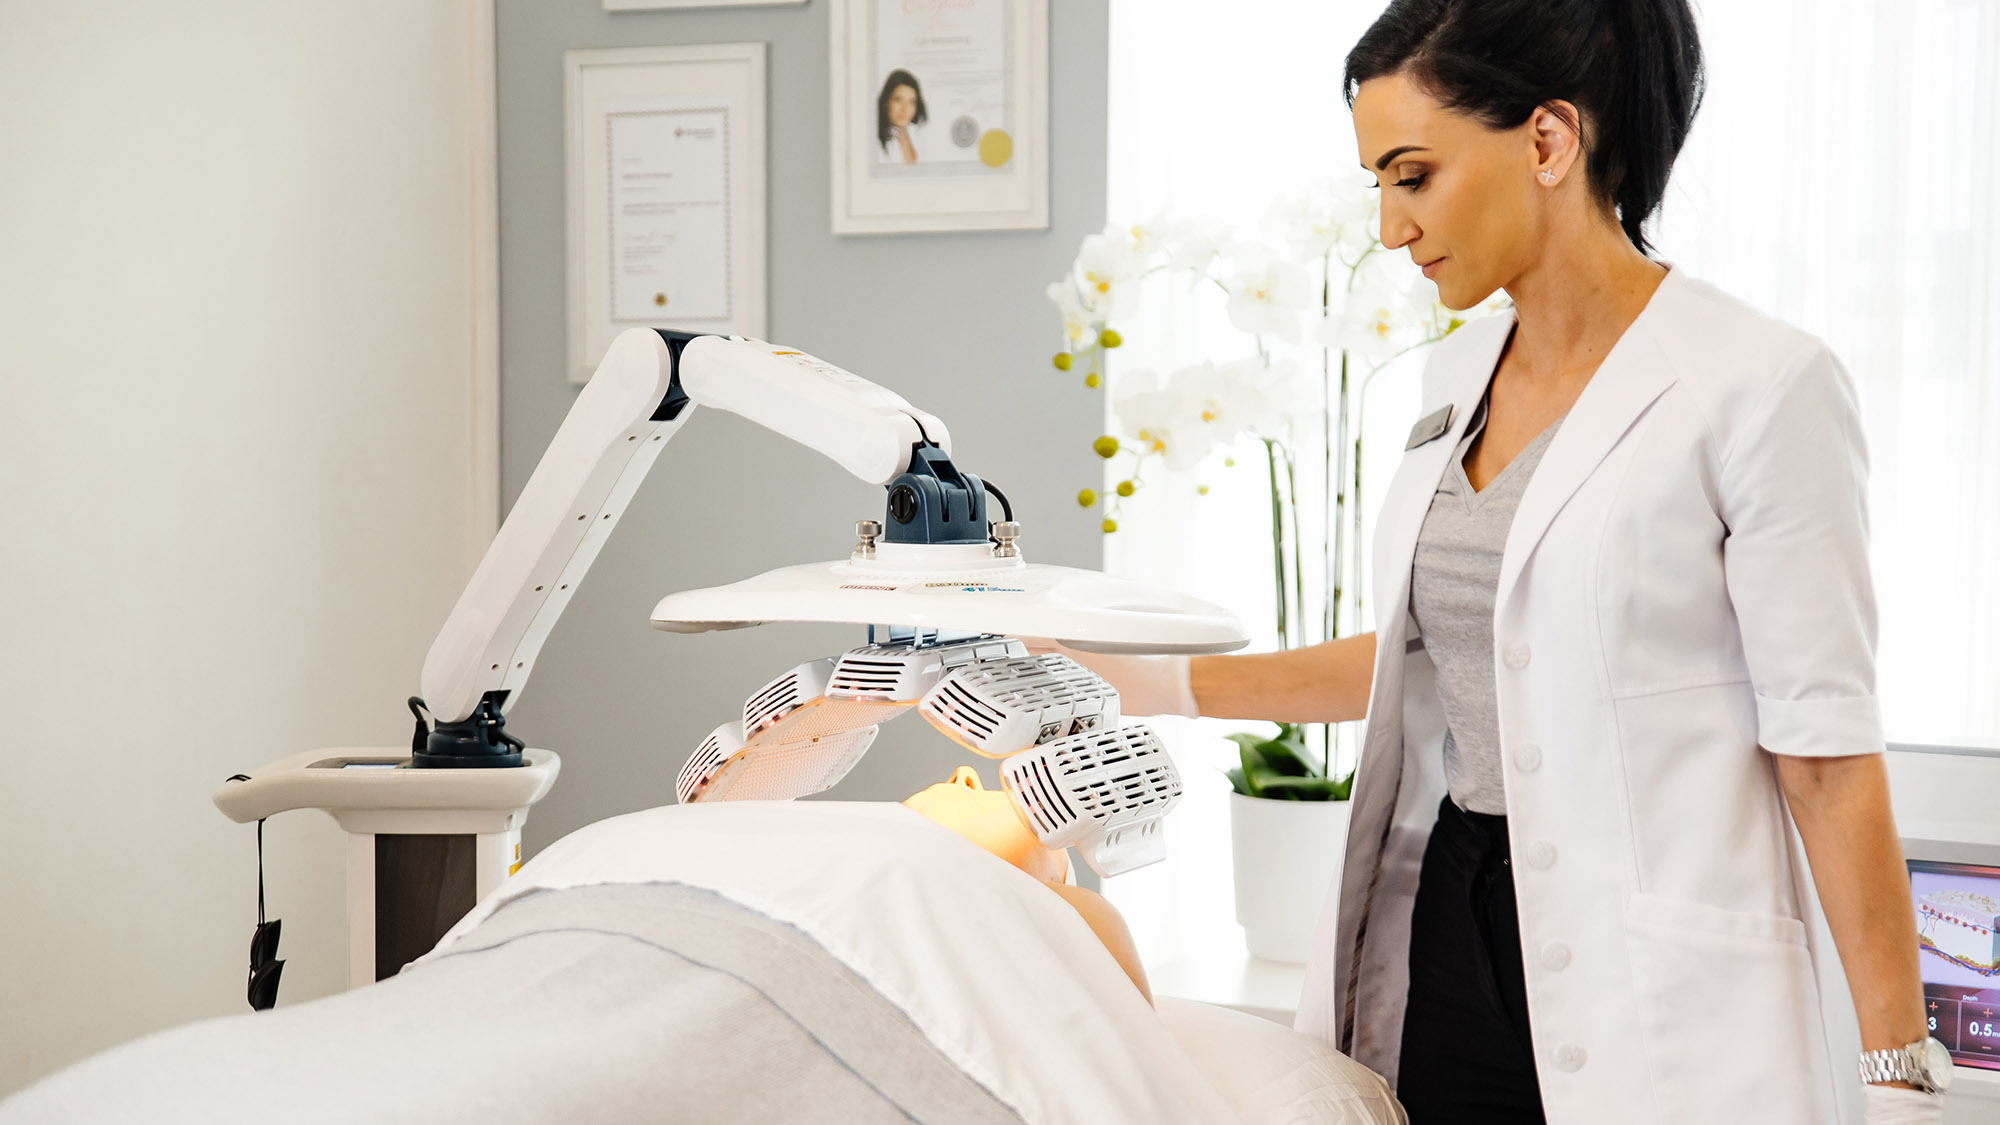 heatlite LED lush skin and laser clinic shepparton